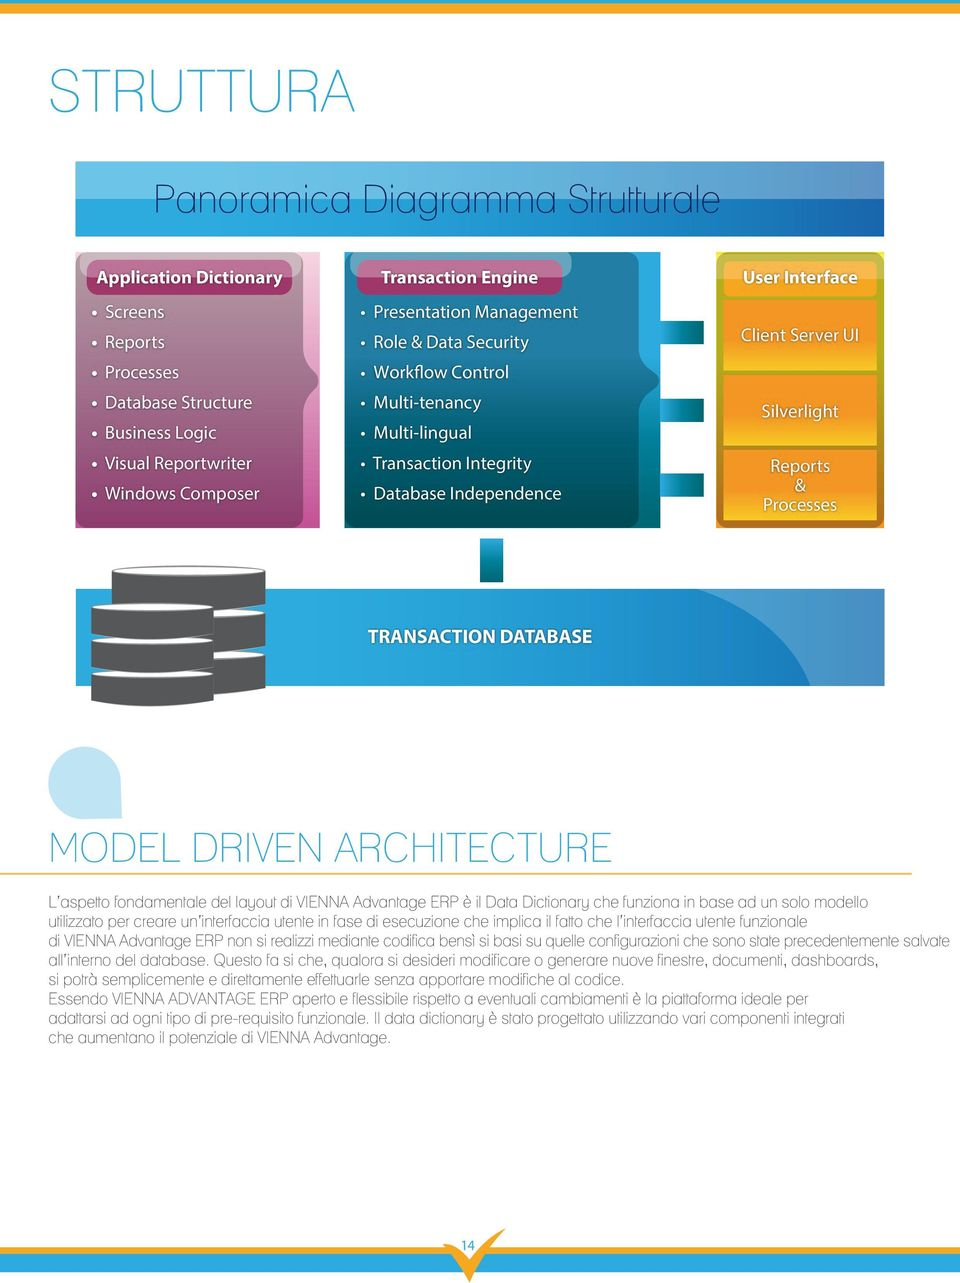 DATABASE MODEL DRIVEN ARCHITECTURE L aspetto fondamentale del layout di VIENNA Advantage ERP è il Data Dictionary che funziona in base ad un solo modello utilizzato per creare un interfaccia utente